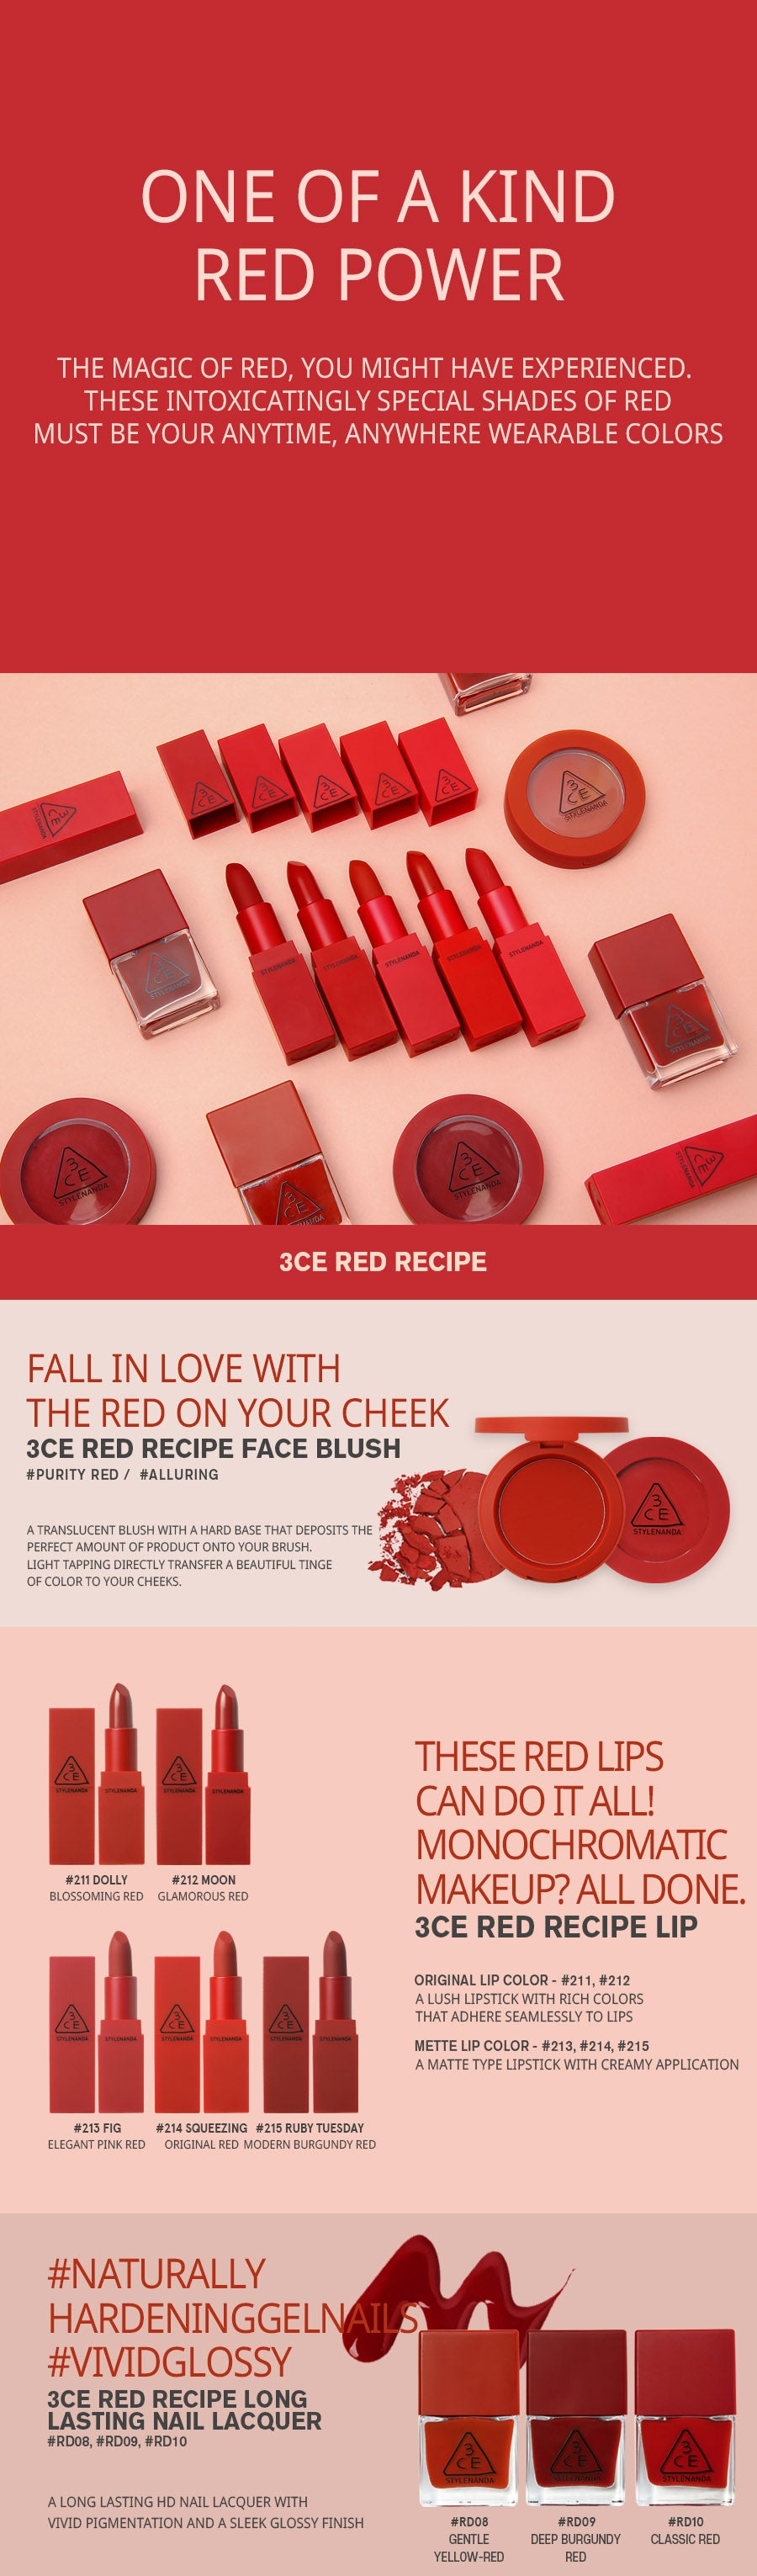 3CE RED RECIPE LIP COLOR MINI KIT